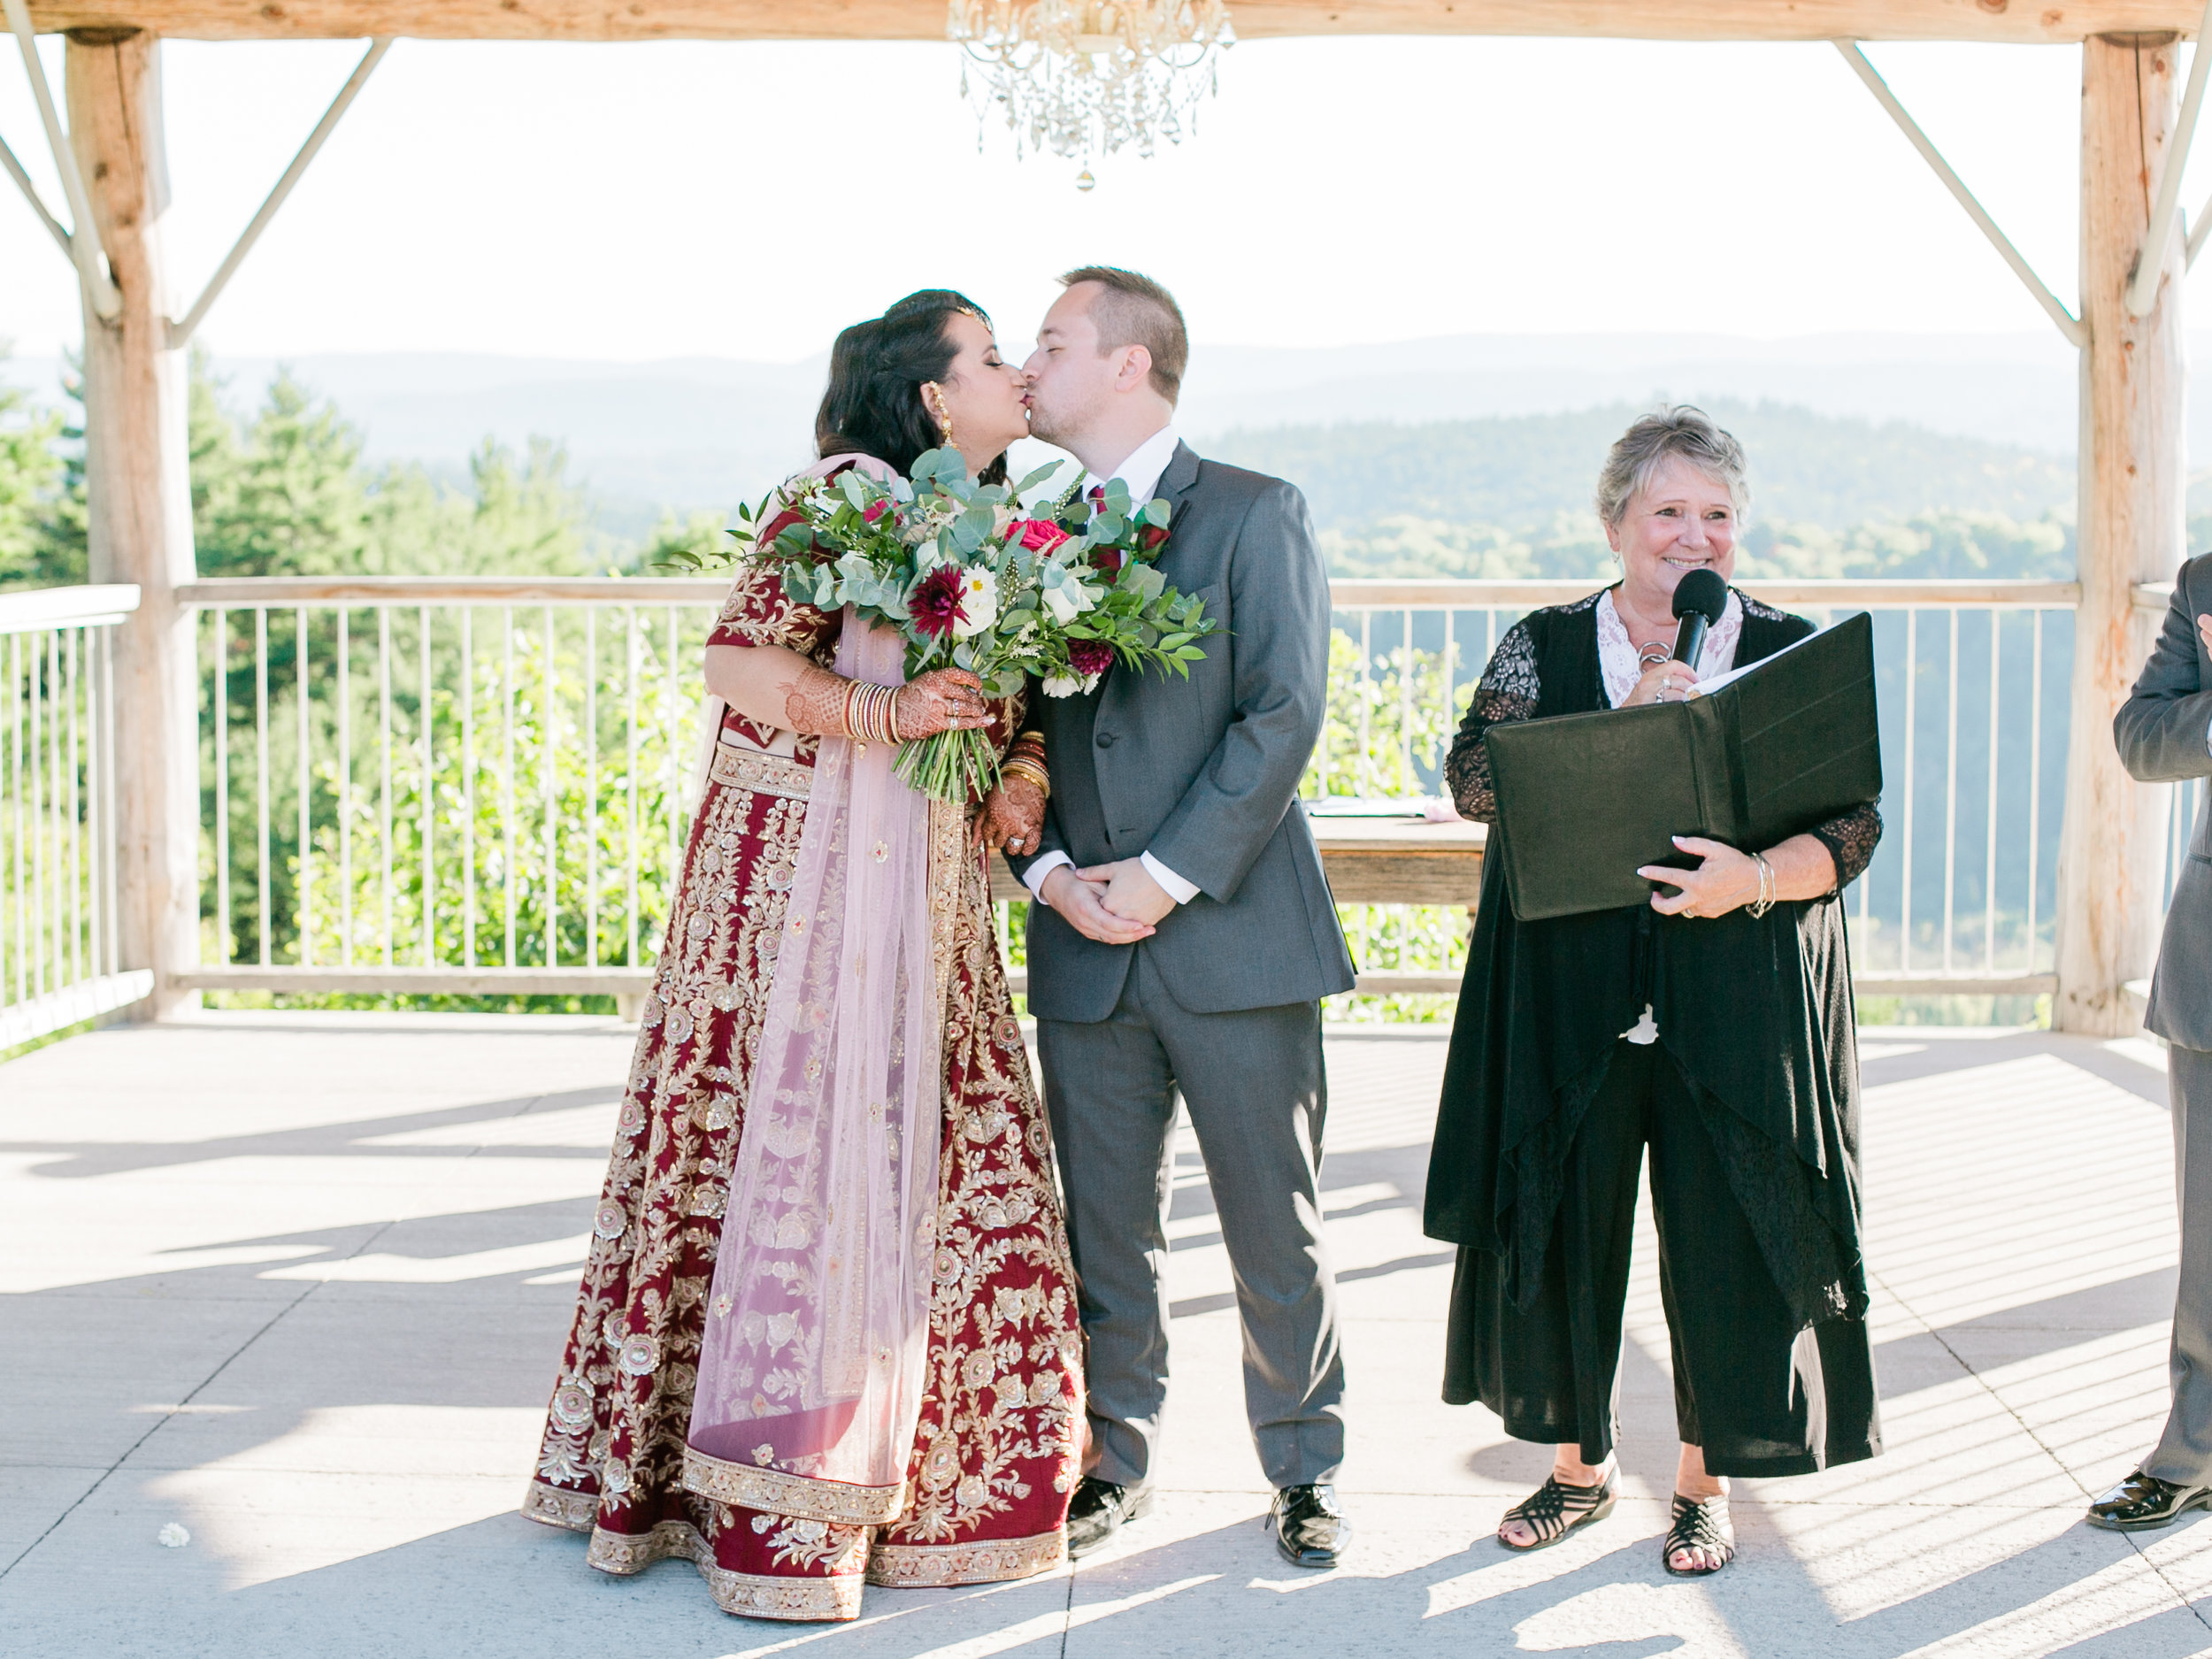 LeBelvedere_MountainTopWedding_StephanieMasonPhotography-177.jpg